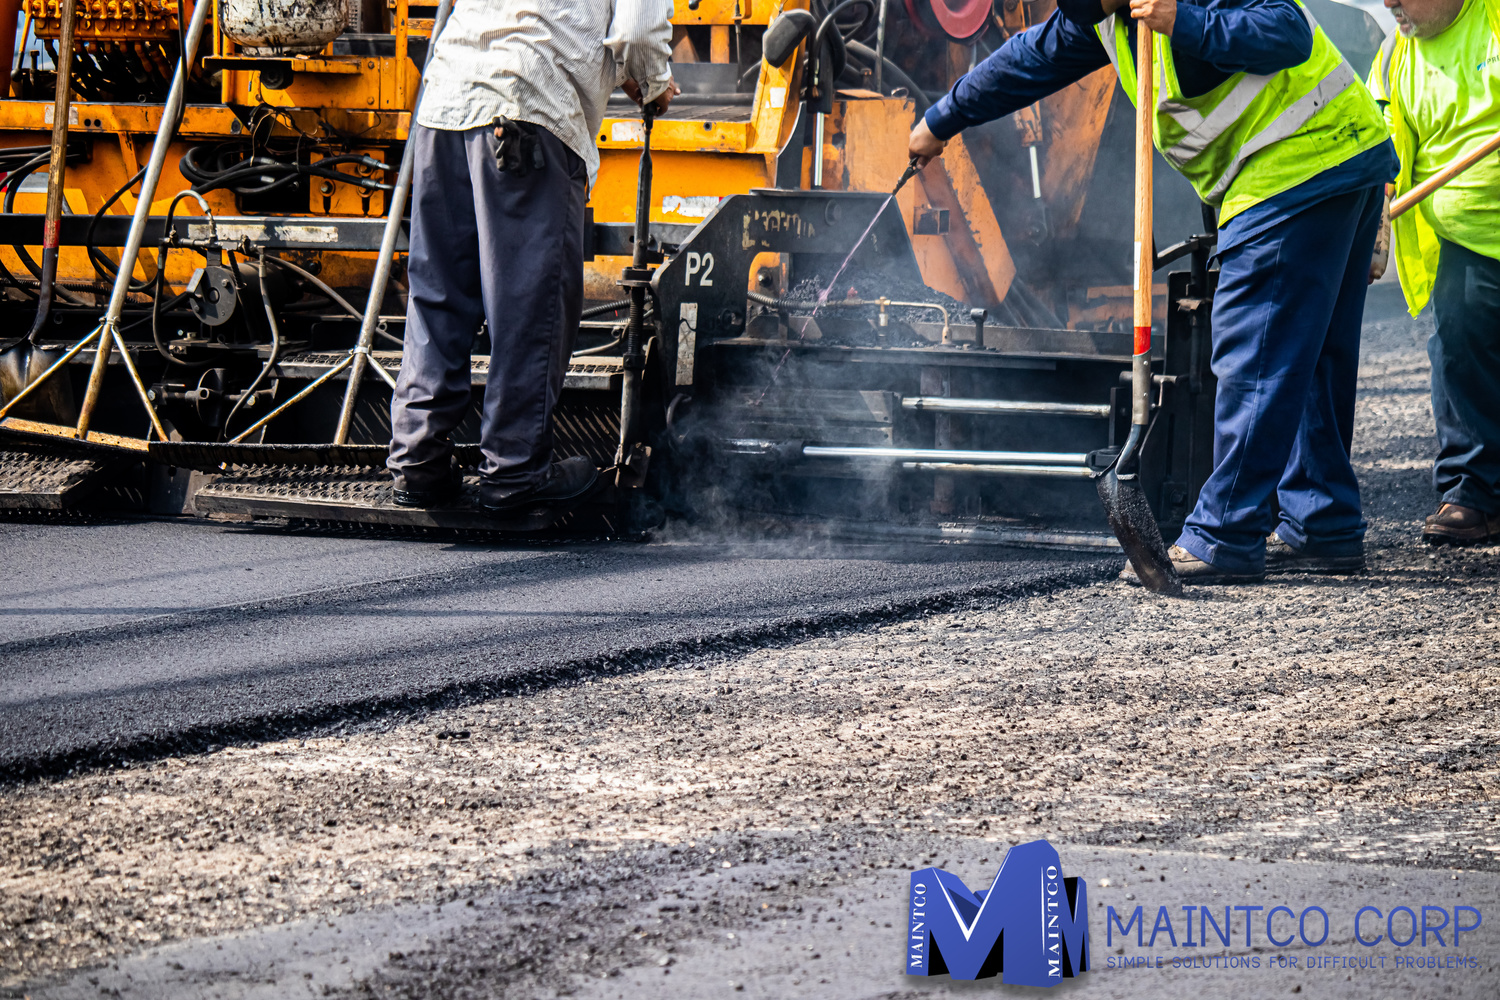 Three Maintco employees in the process of paving a business's parking lot